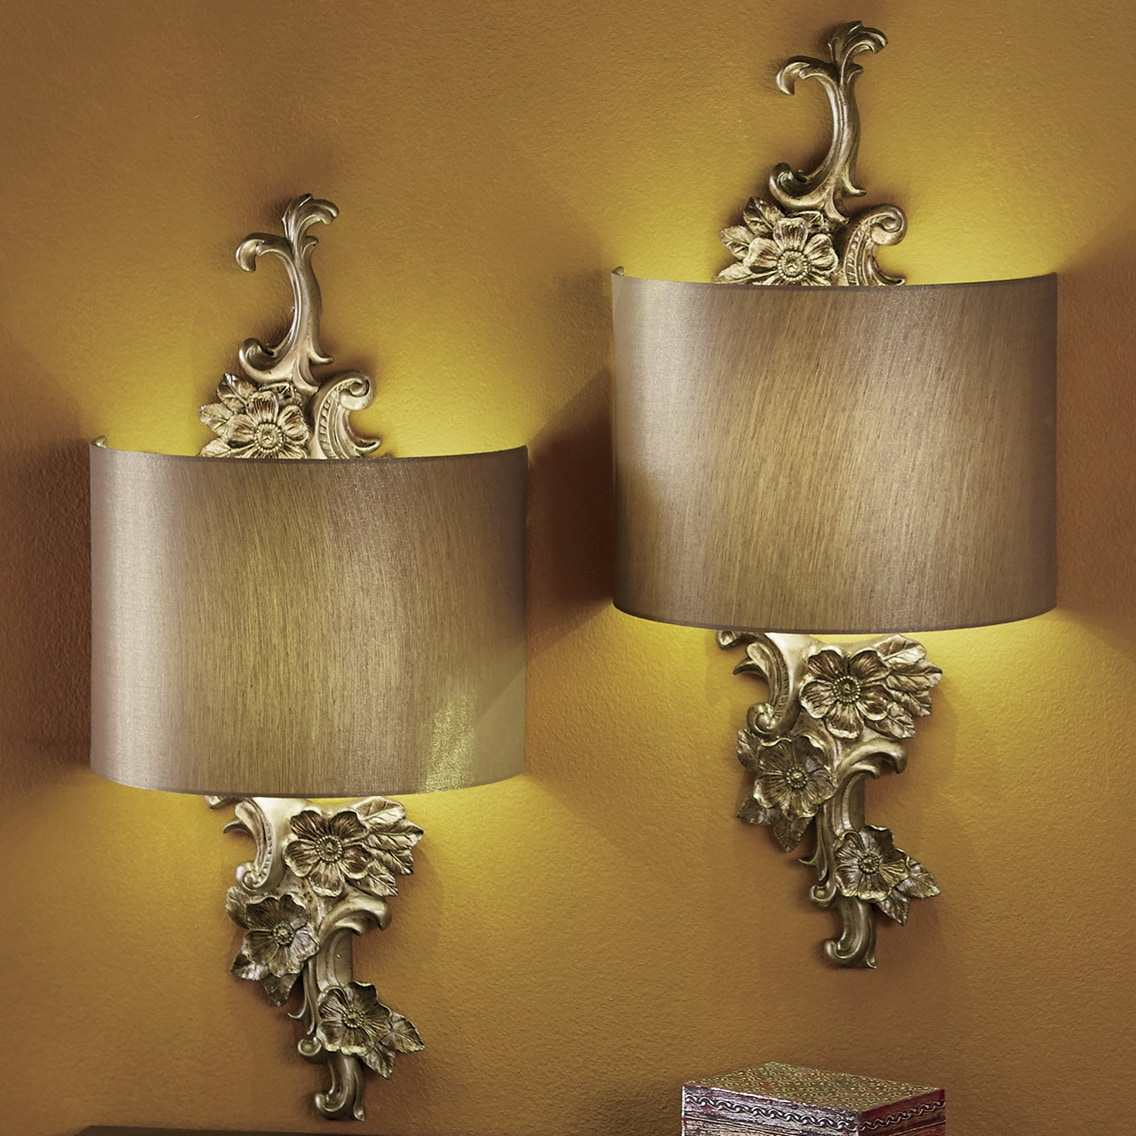 Gold Floral Wireless LED Wall Sconce | Seventh Avenue on Flower Wall Sconces id=15548